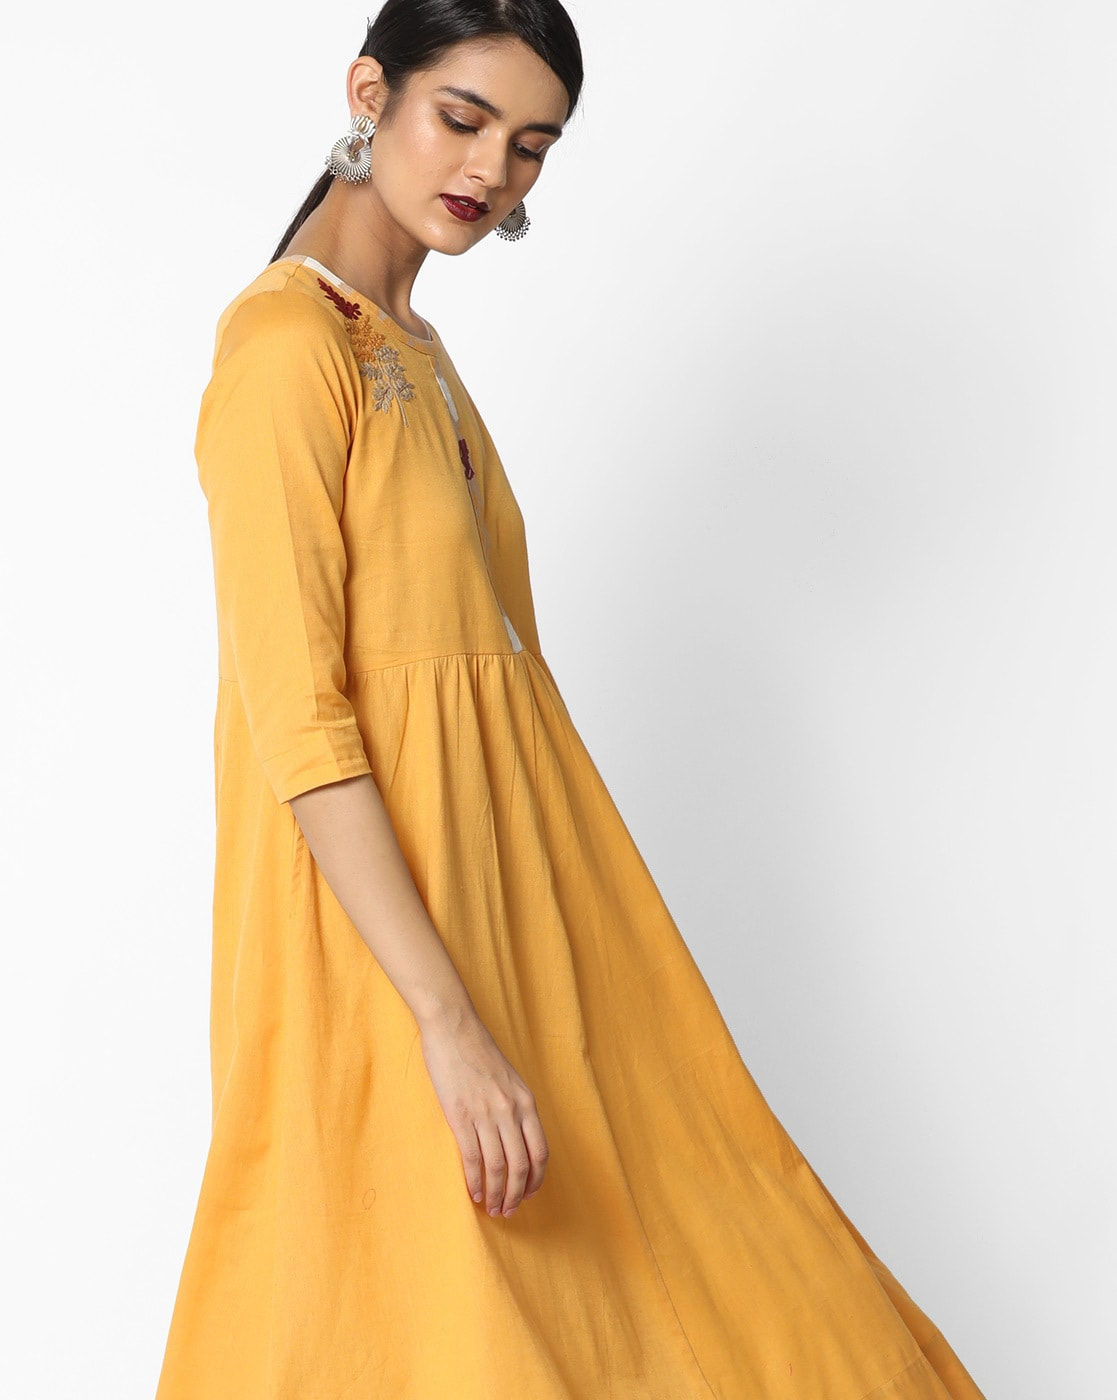 67954d1d8bec Buy Mustard Yellow Dresses   Gowns for Women by AJIO Online